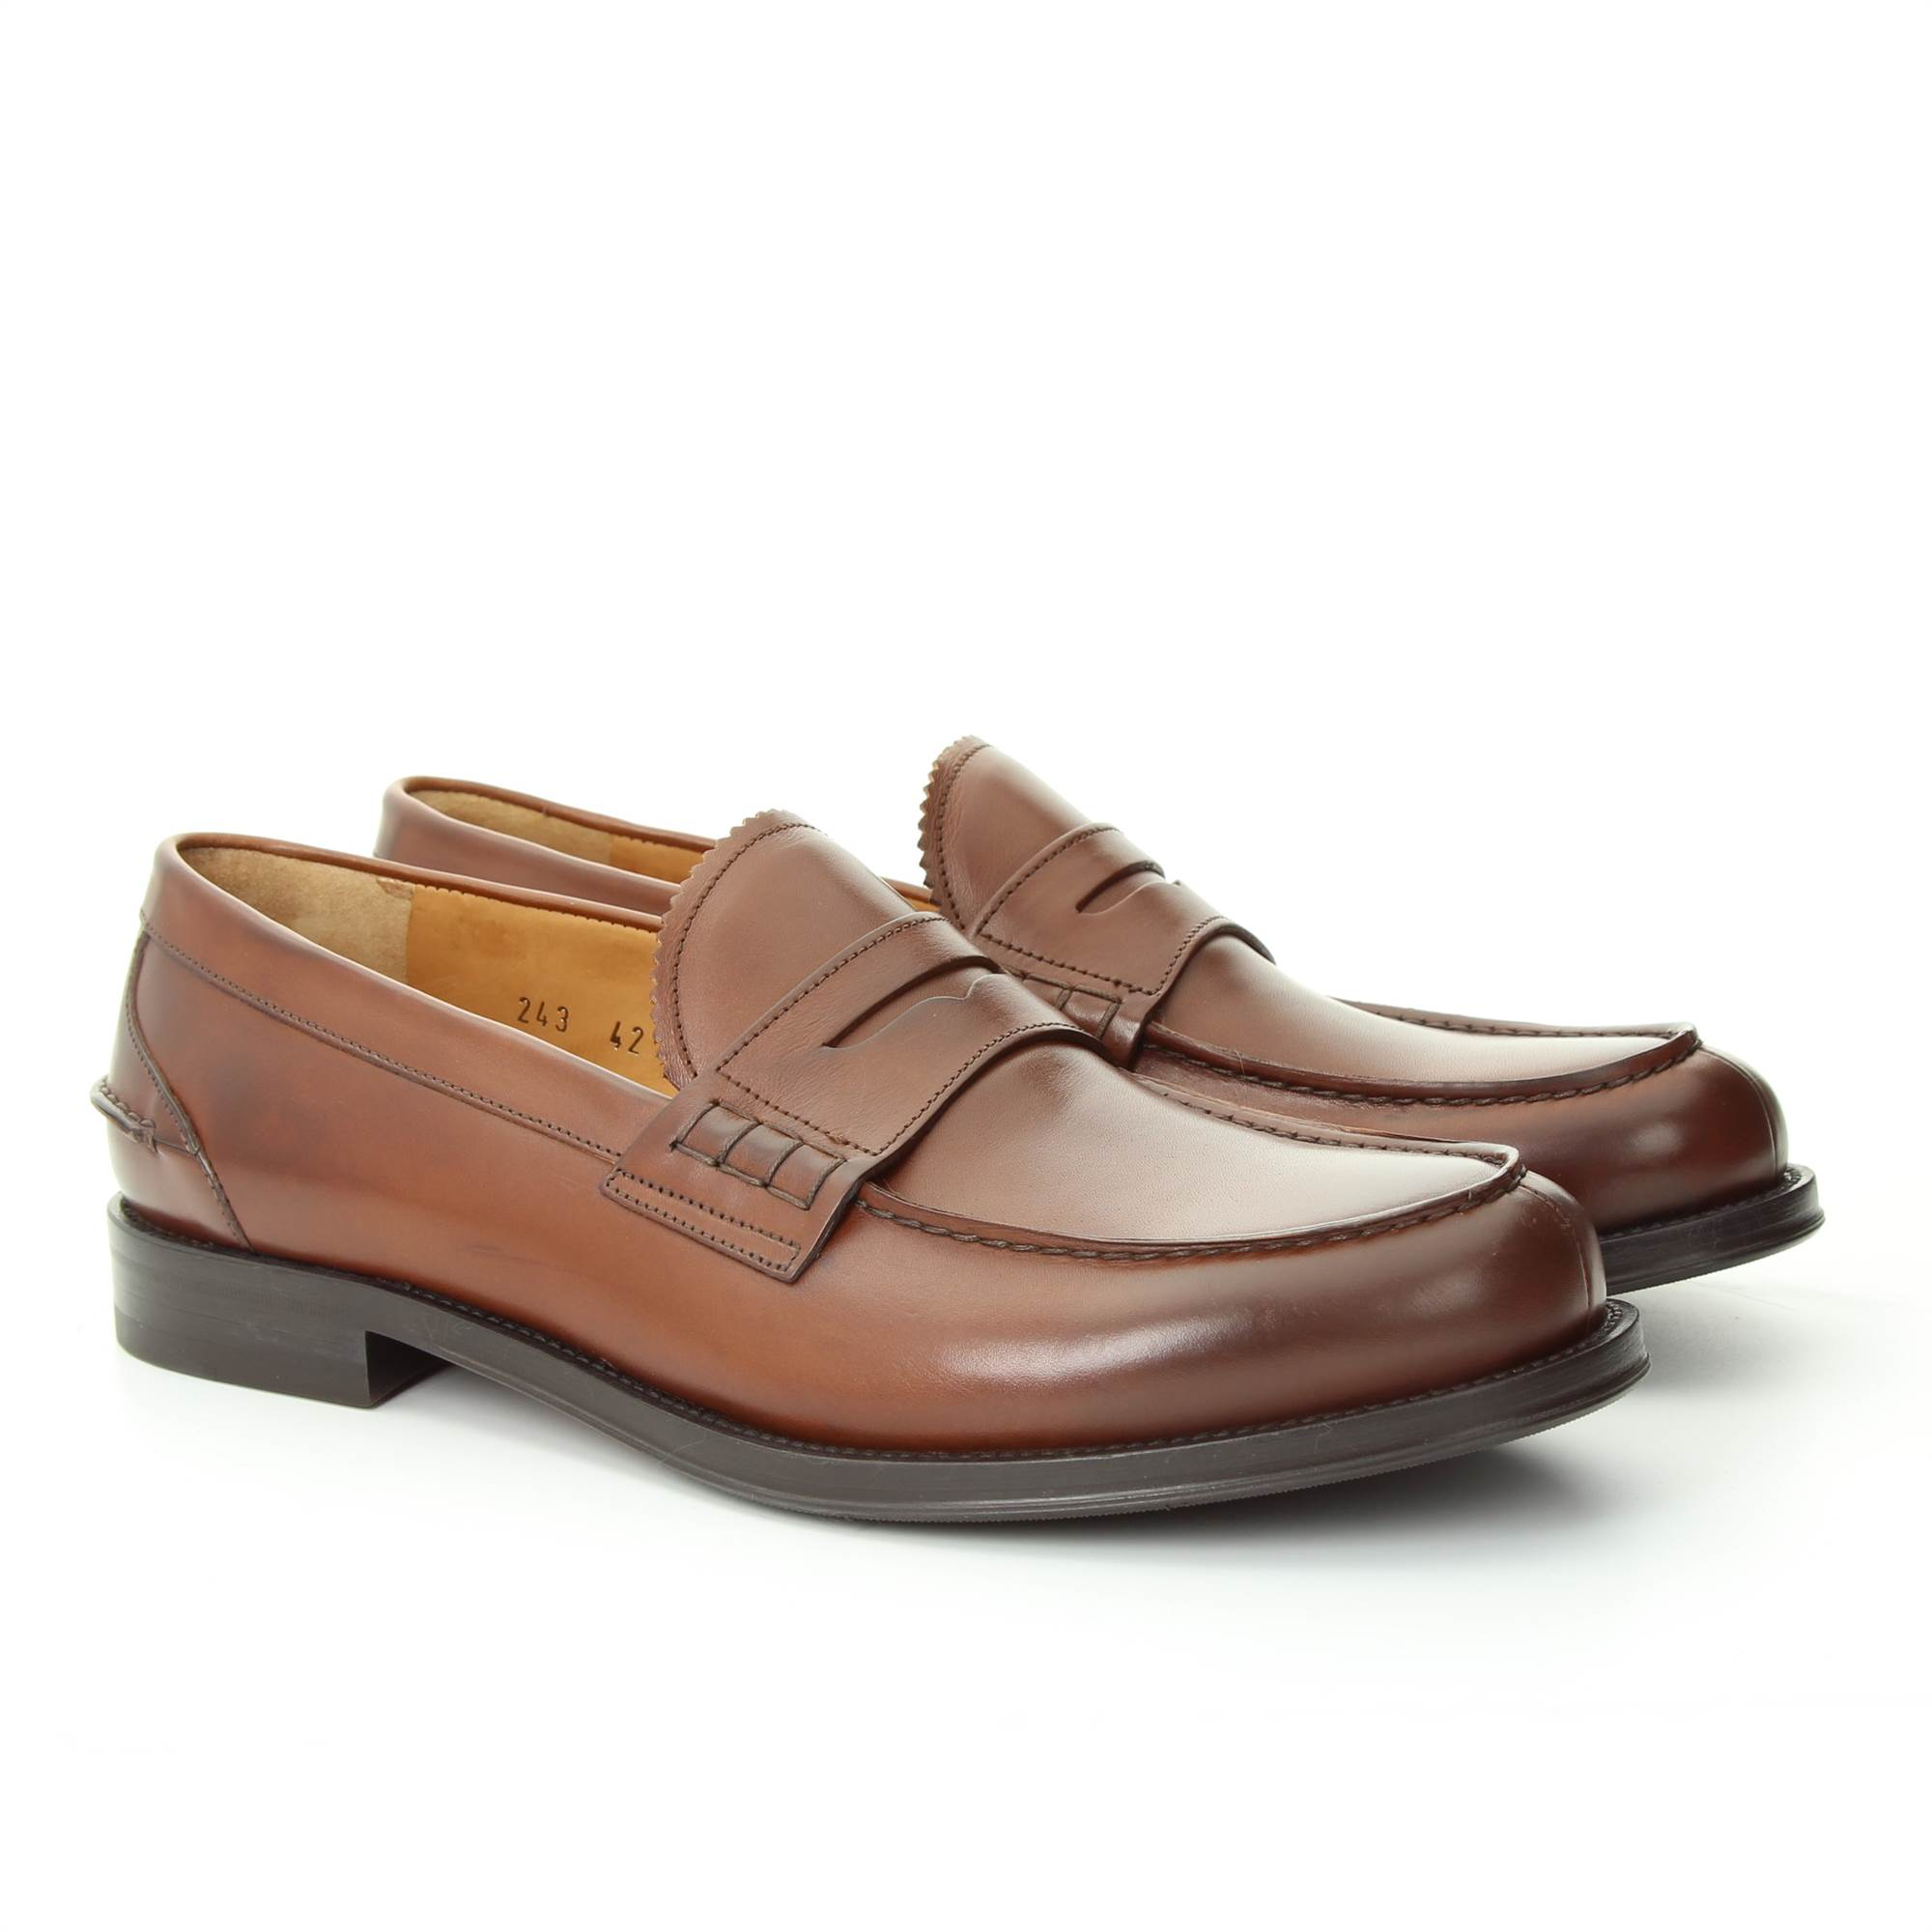 LANCIOTTI DE VERZI 243PS NOCE Shoes Man MOCCASIN